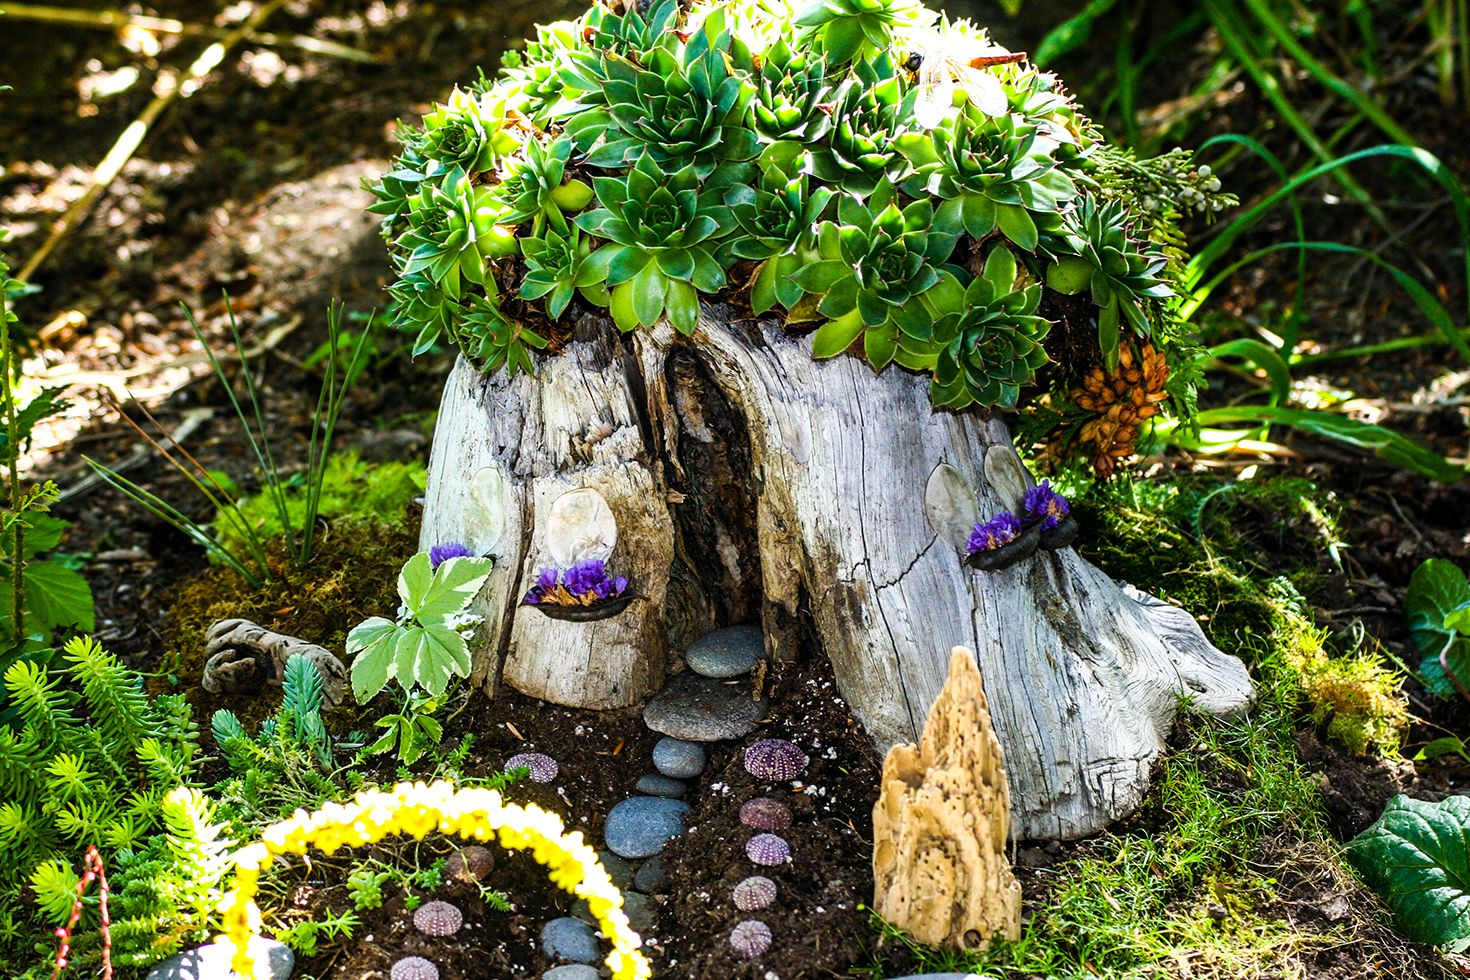 10 DIY Fairy Garden Ideas - How to Make a Miniature Fairy Garden